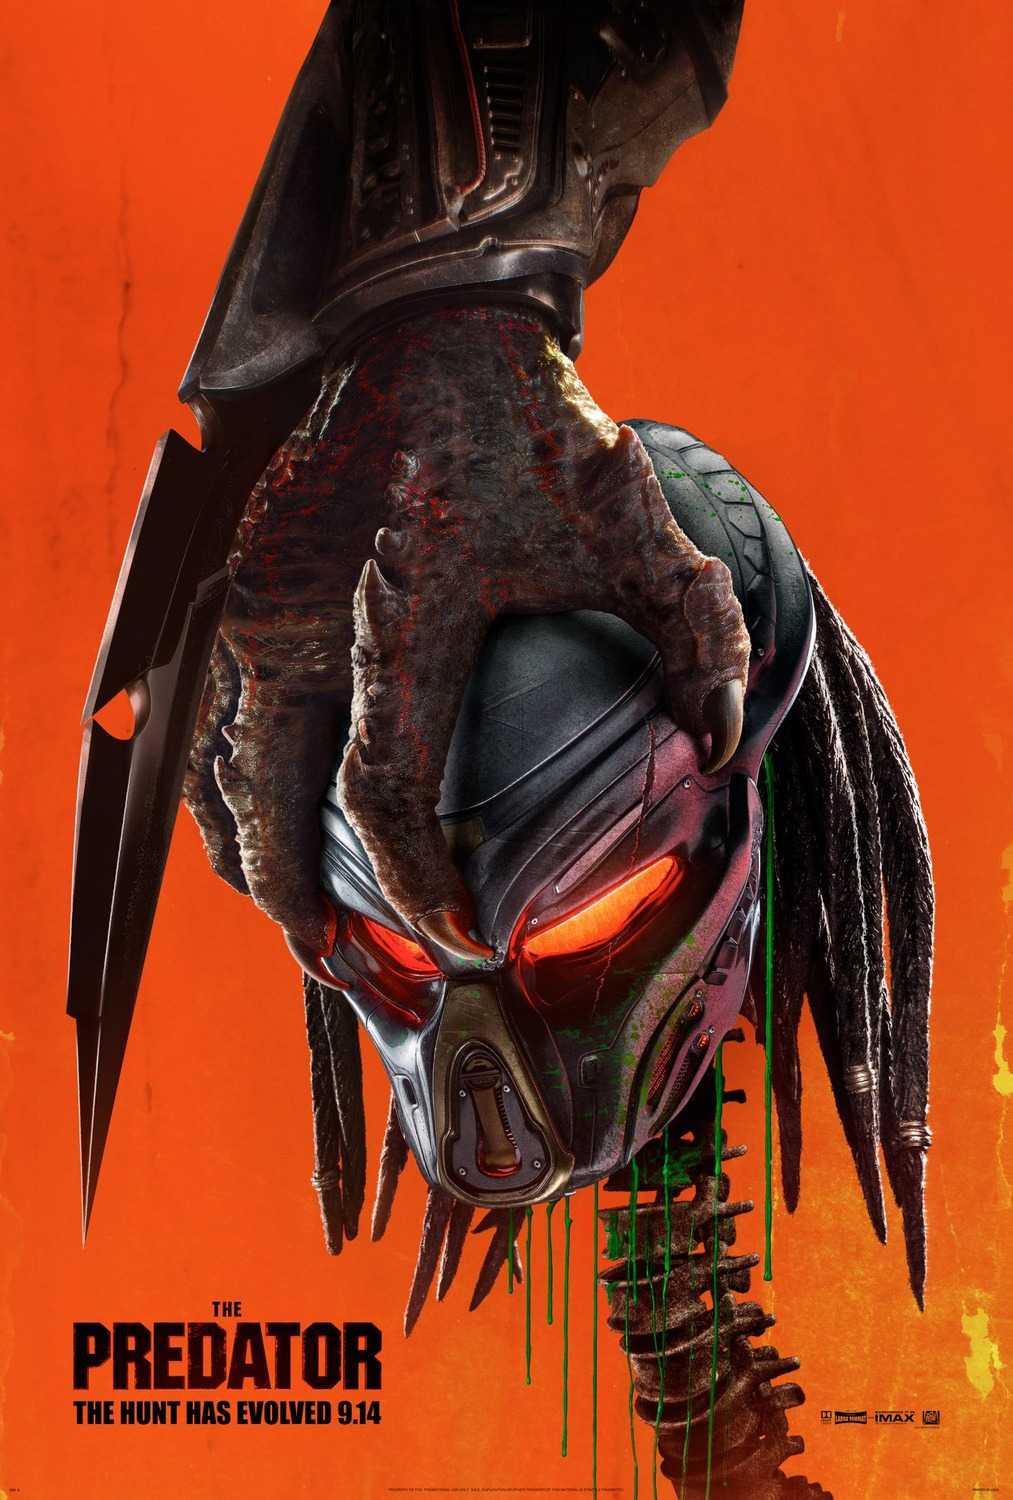 The Predator film review: Did Shane Black deliver a worthy sequel?